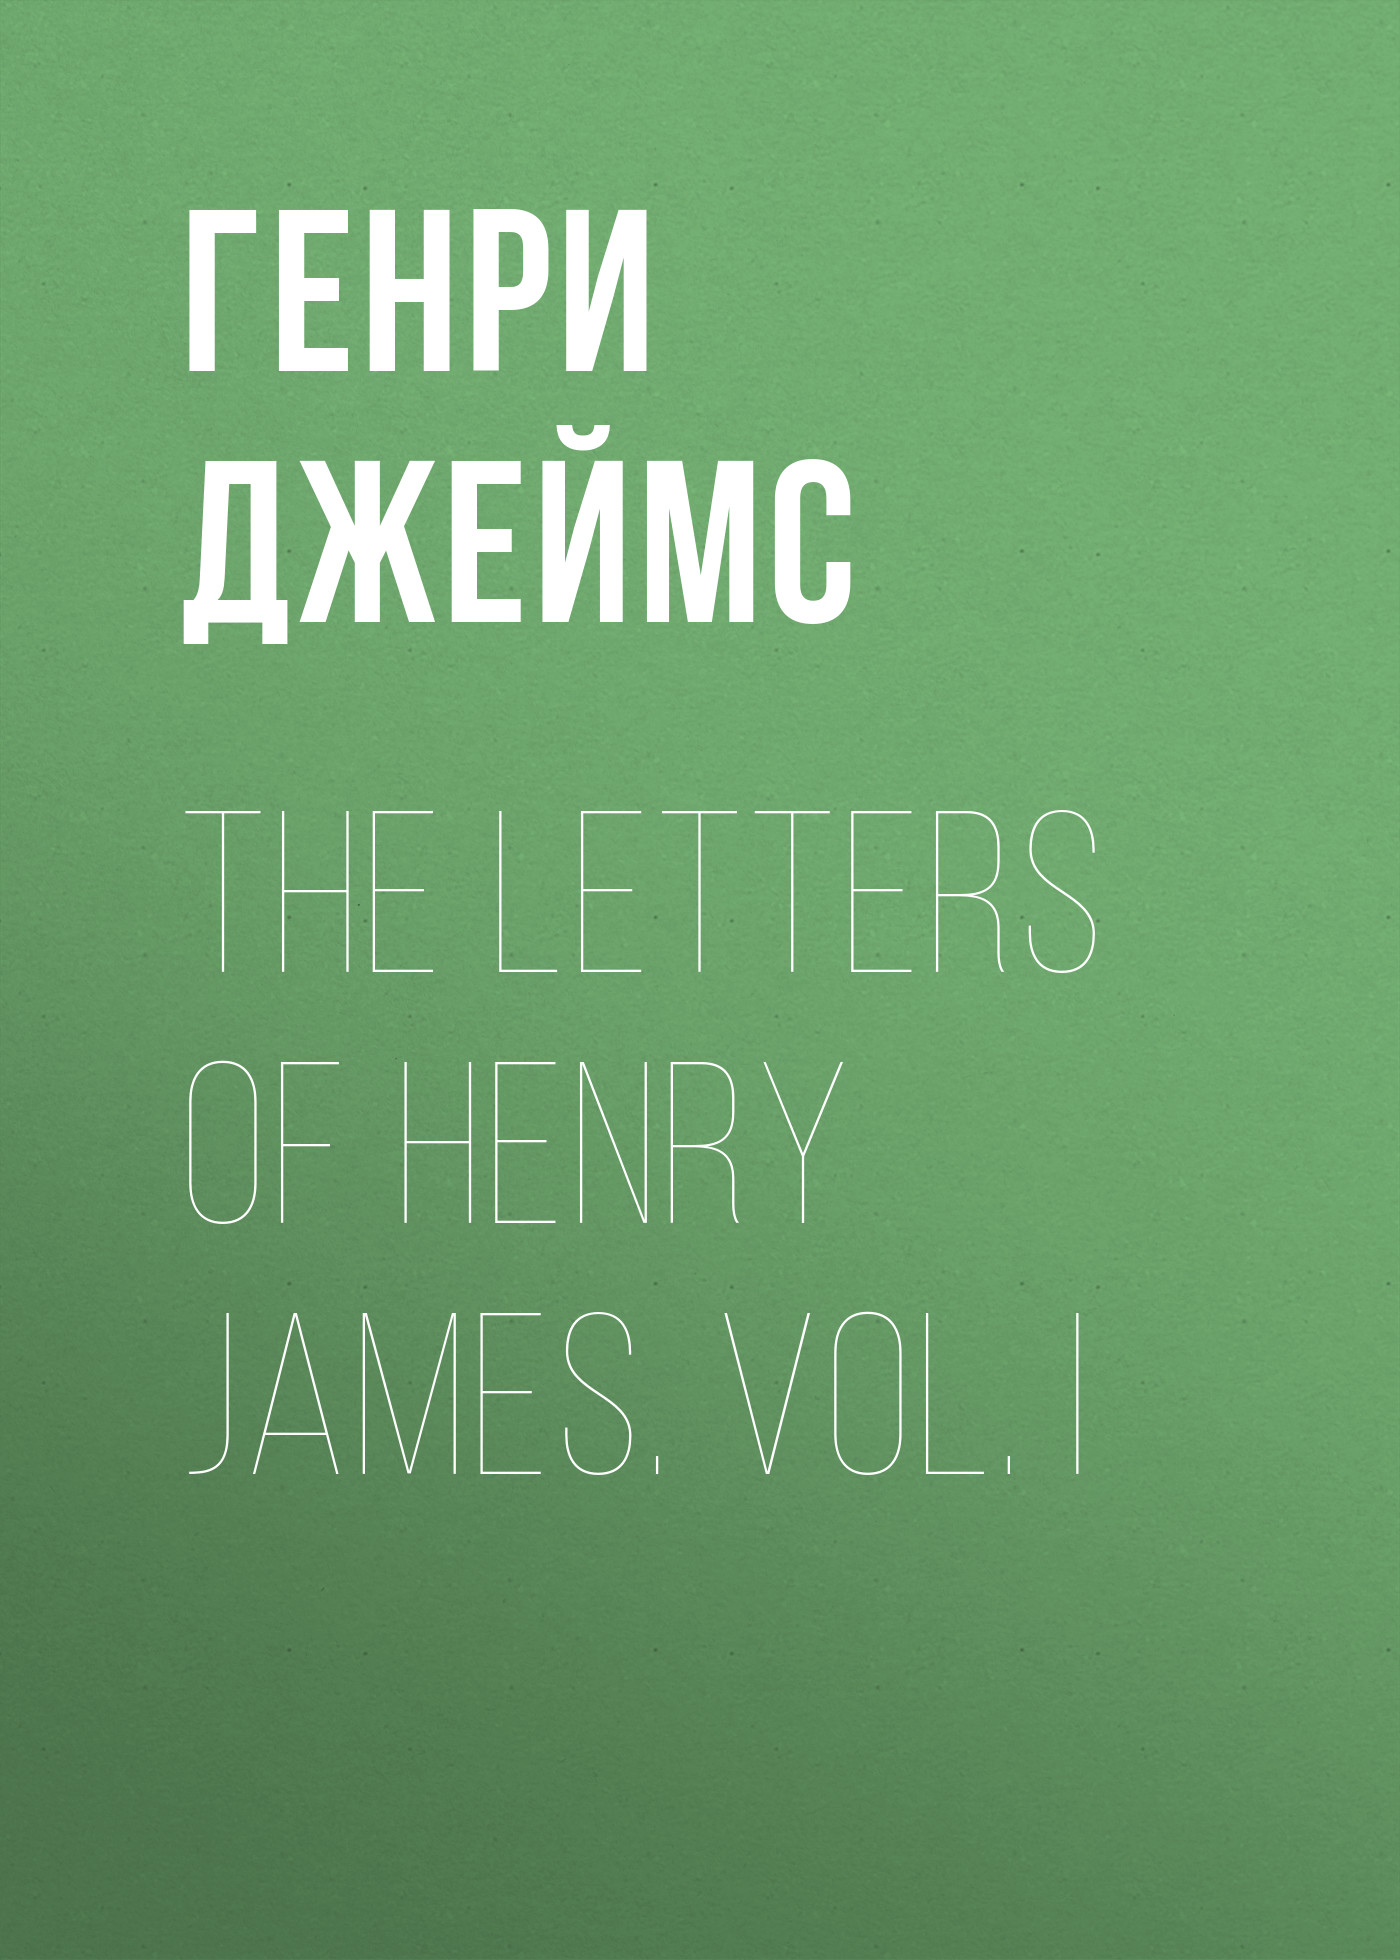 Генри Джеймс The Letters of Henry James. Vol. I henry james the portrait of a lady i